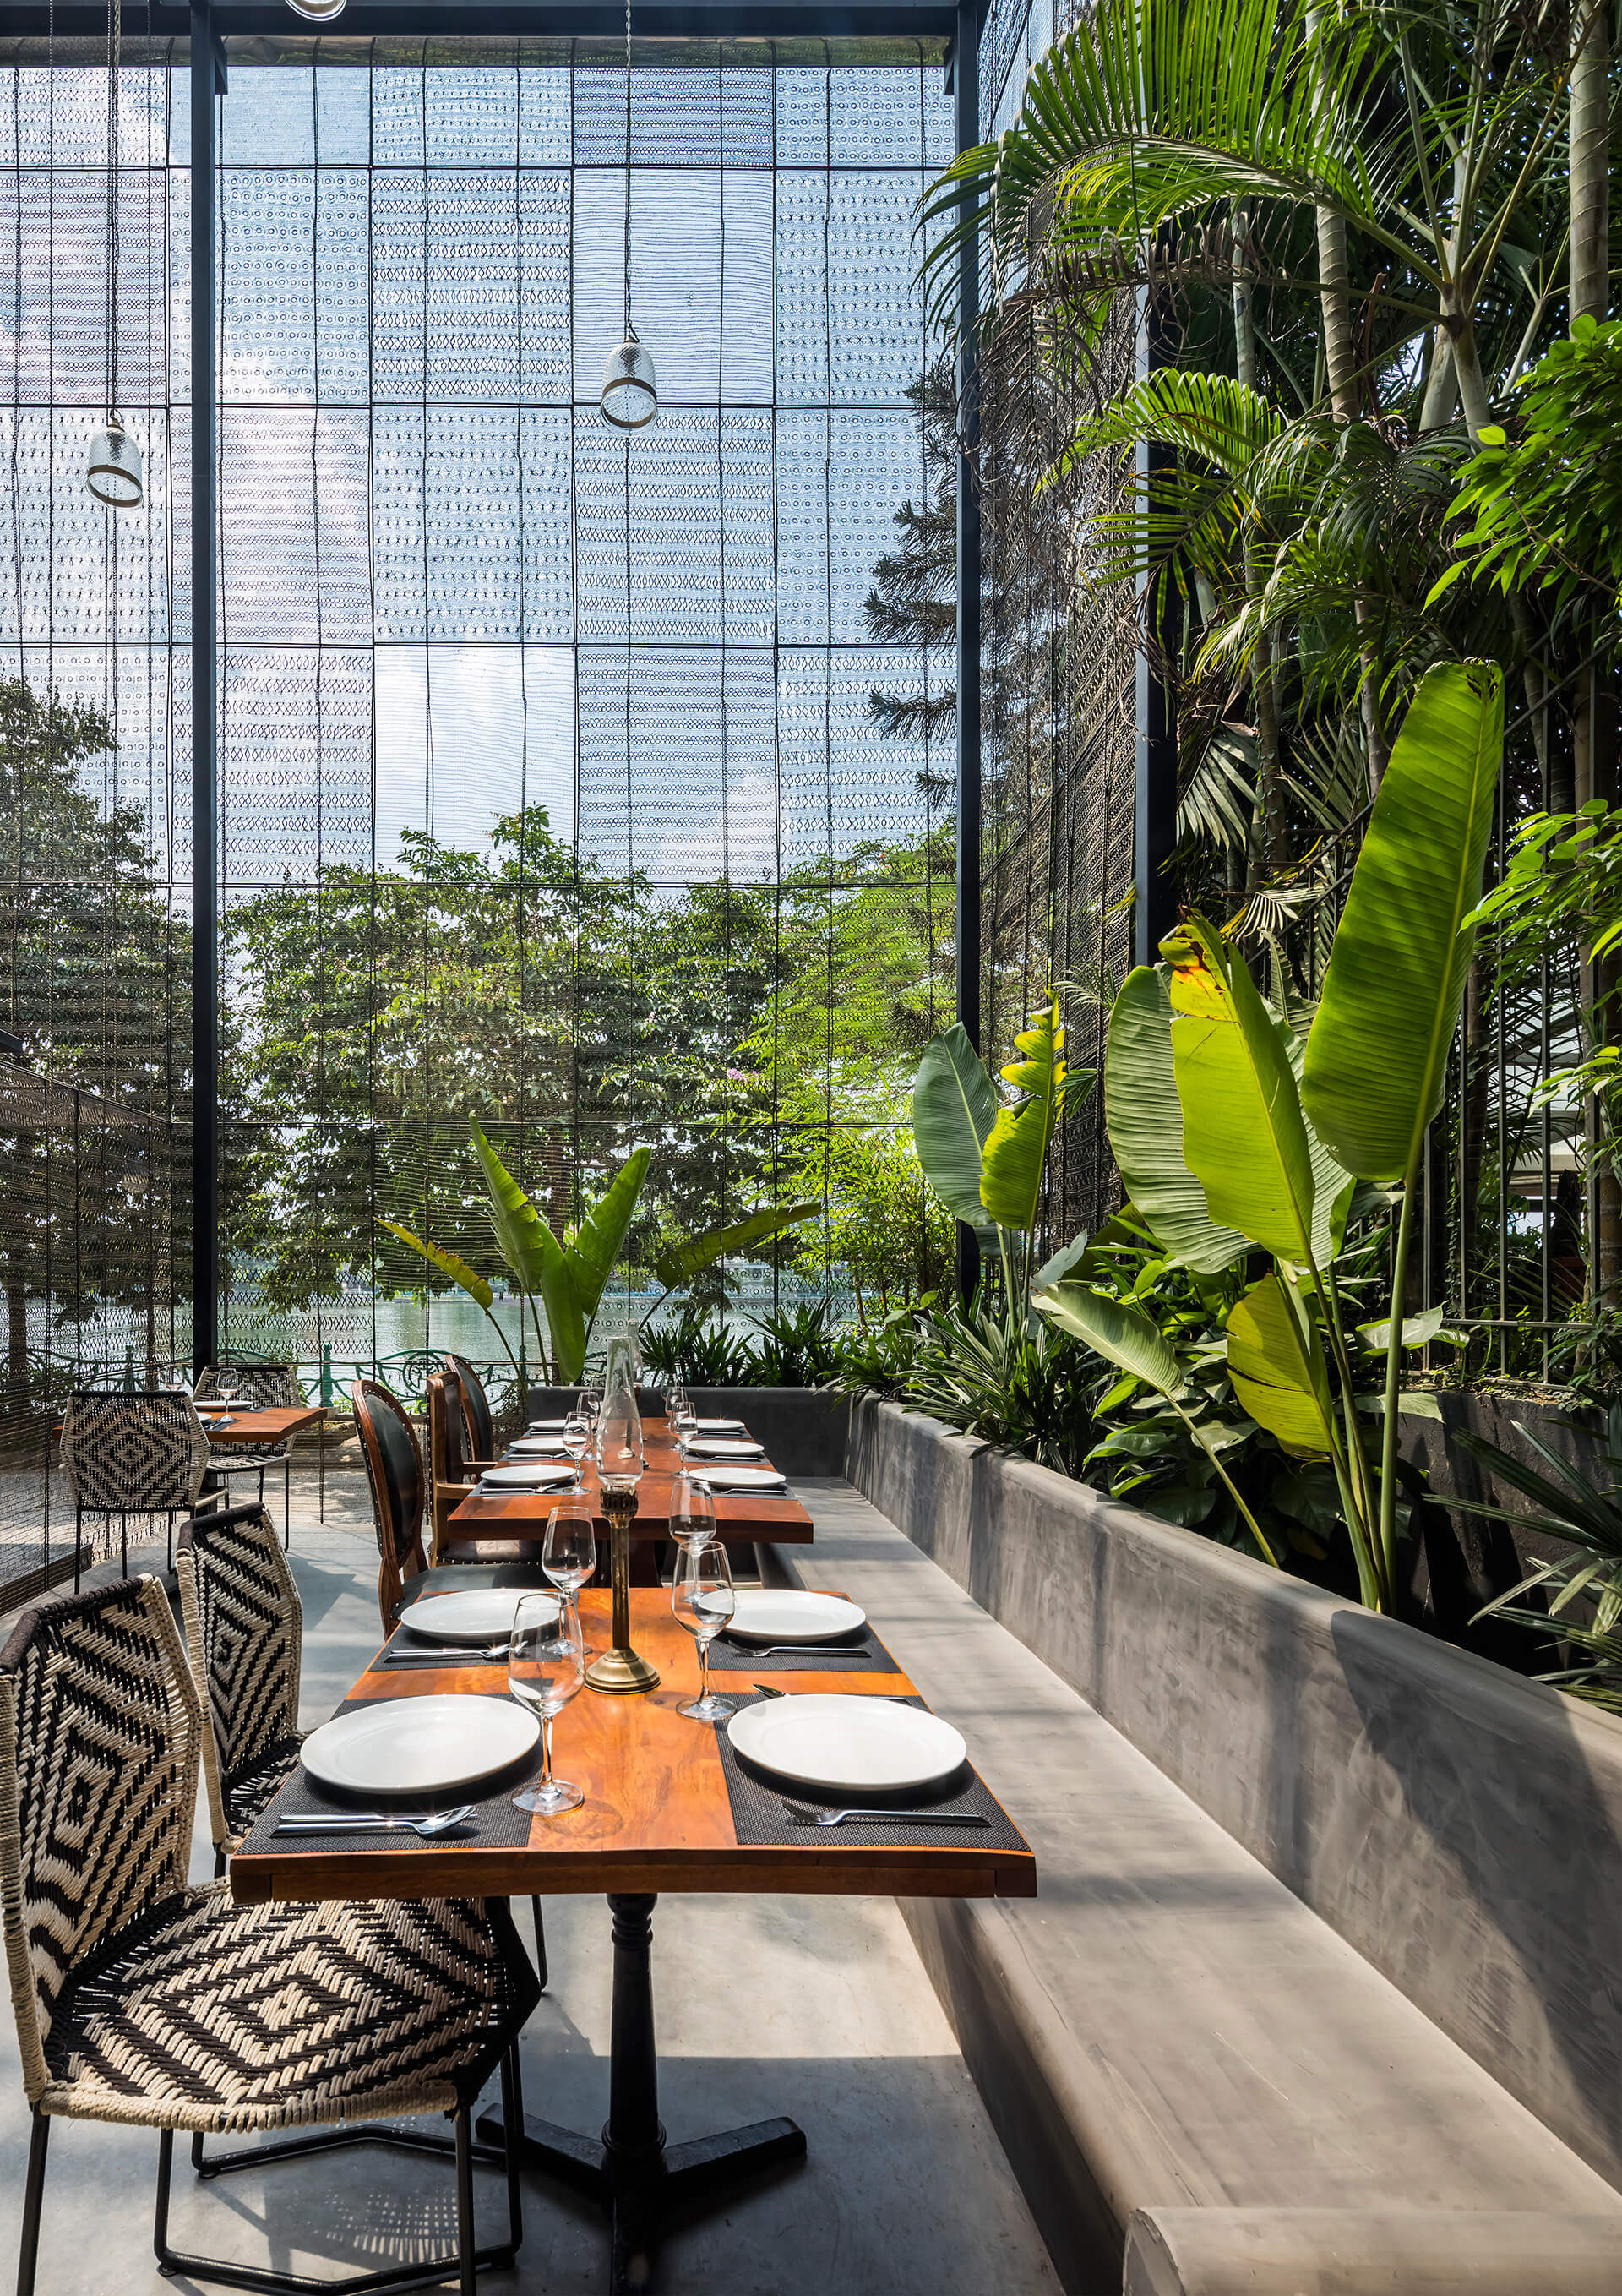 The mesh creates an interior and exterior connect | RASM restaurant | Studio VDGA | STIRworld